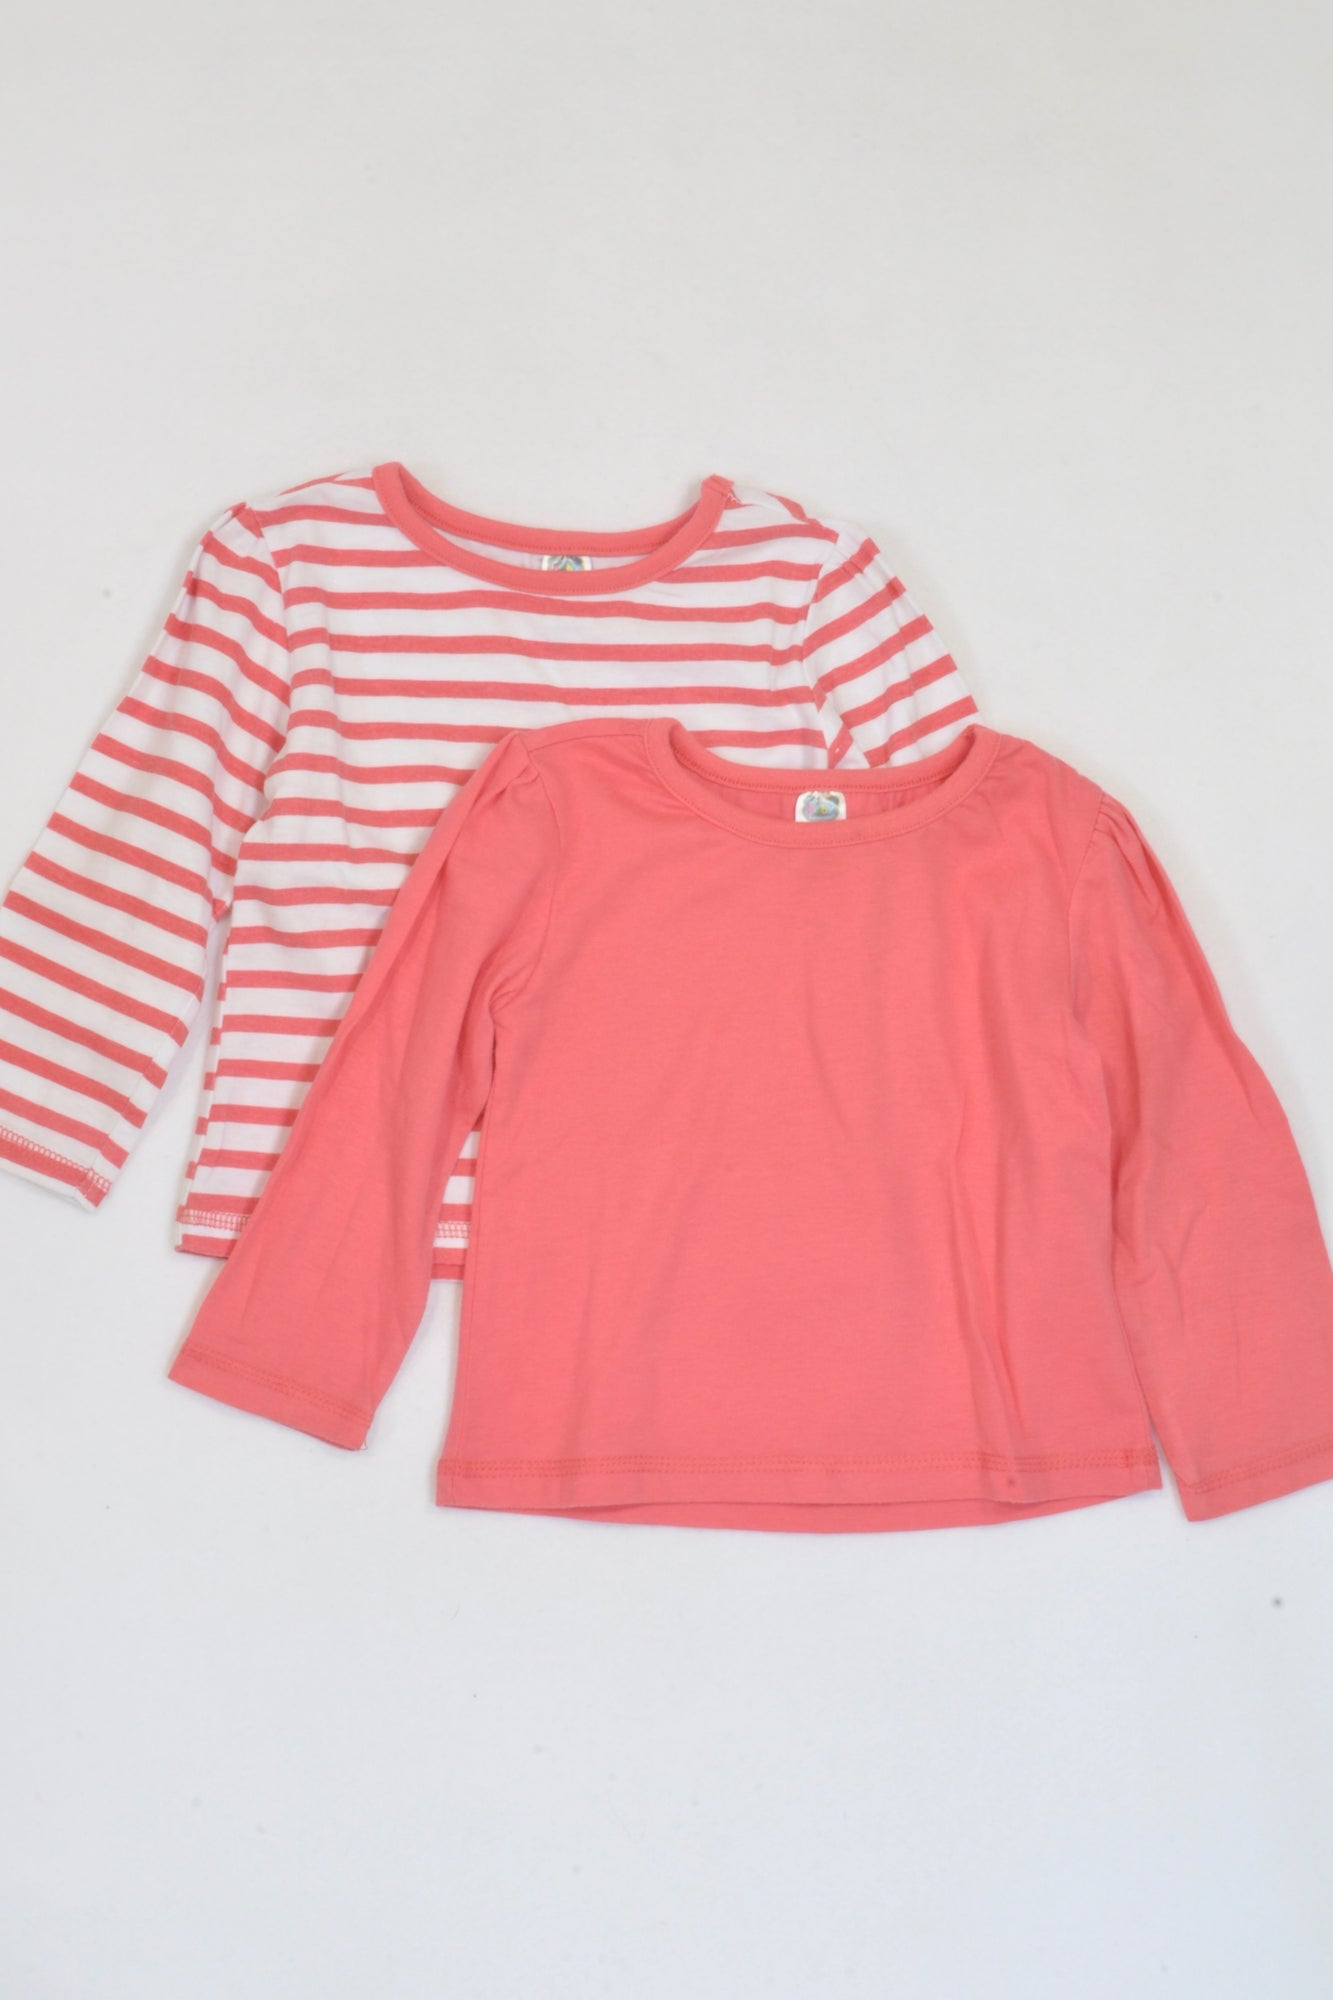 Ackermans 2 Pack Coral Striped T-Shirts Girls 12-18 months